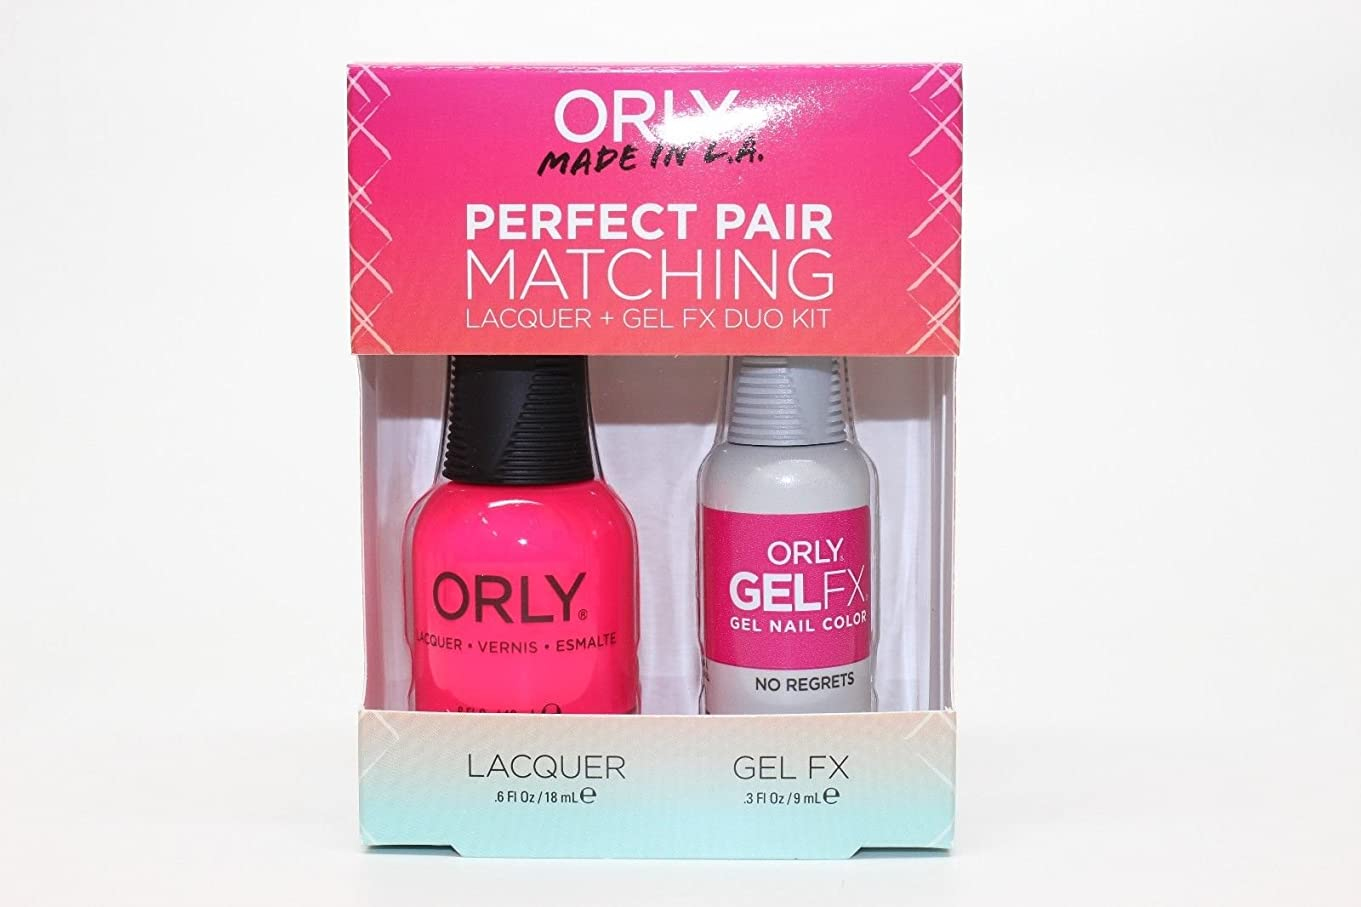 動機付ける貨物無視Orly Lacquer + Gel FX - Perfect Pair Matching DUO Kit - No Regrets